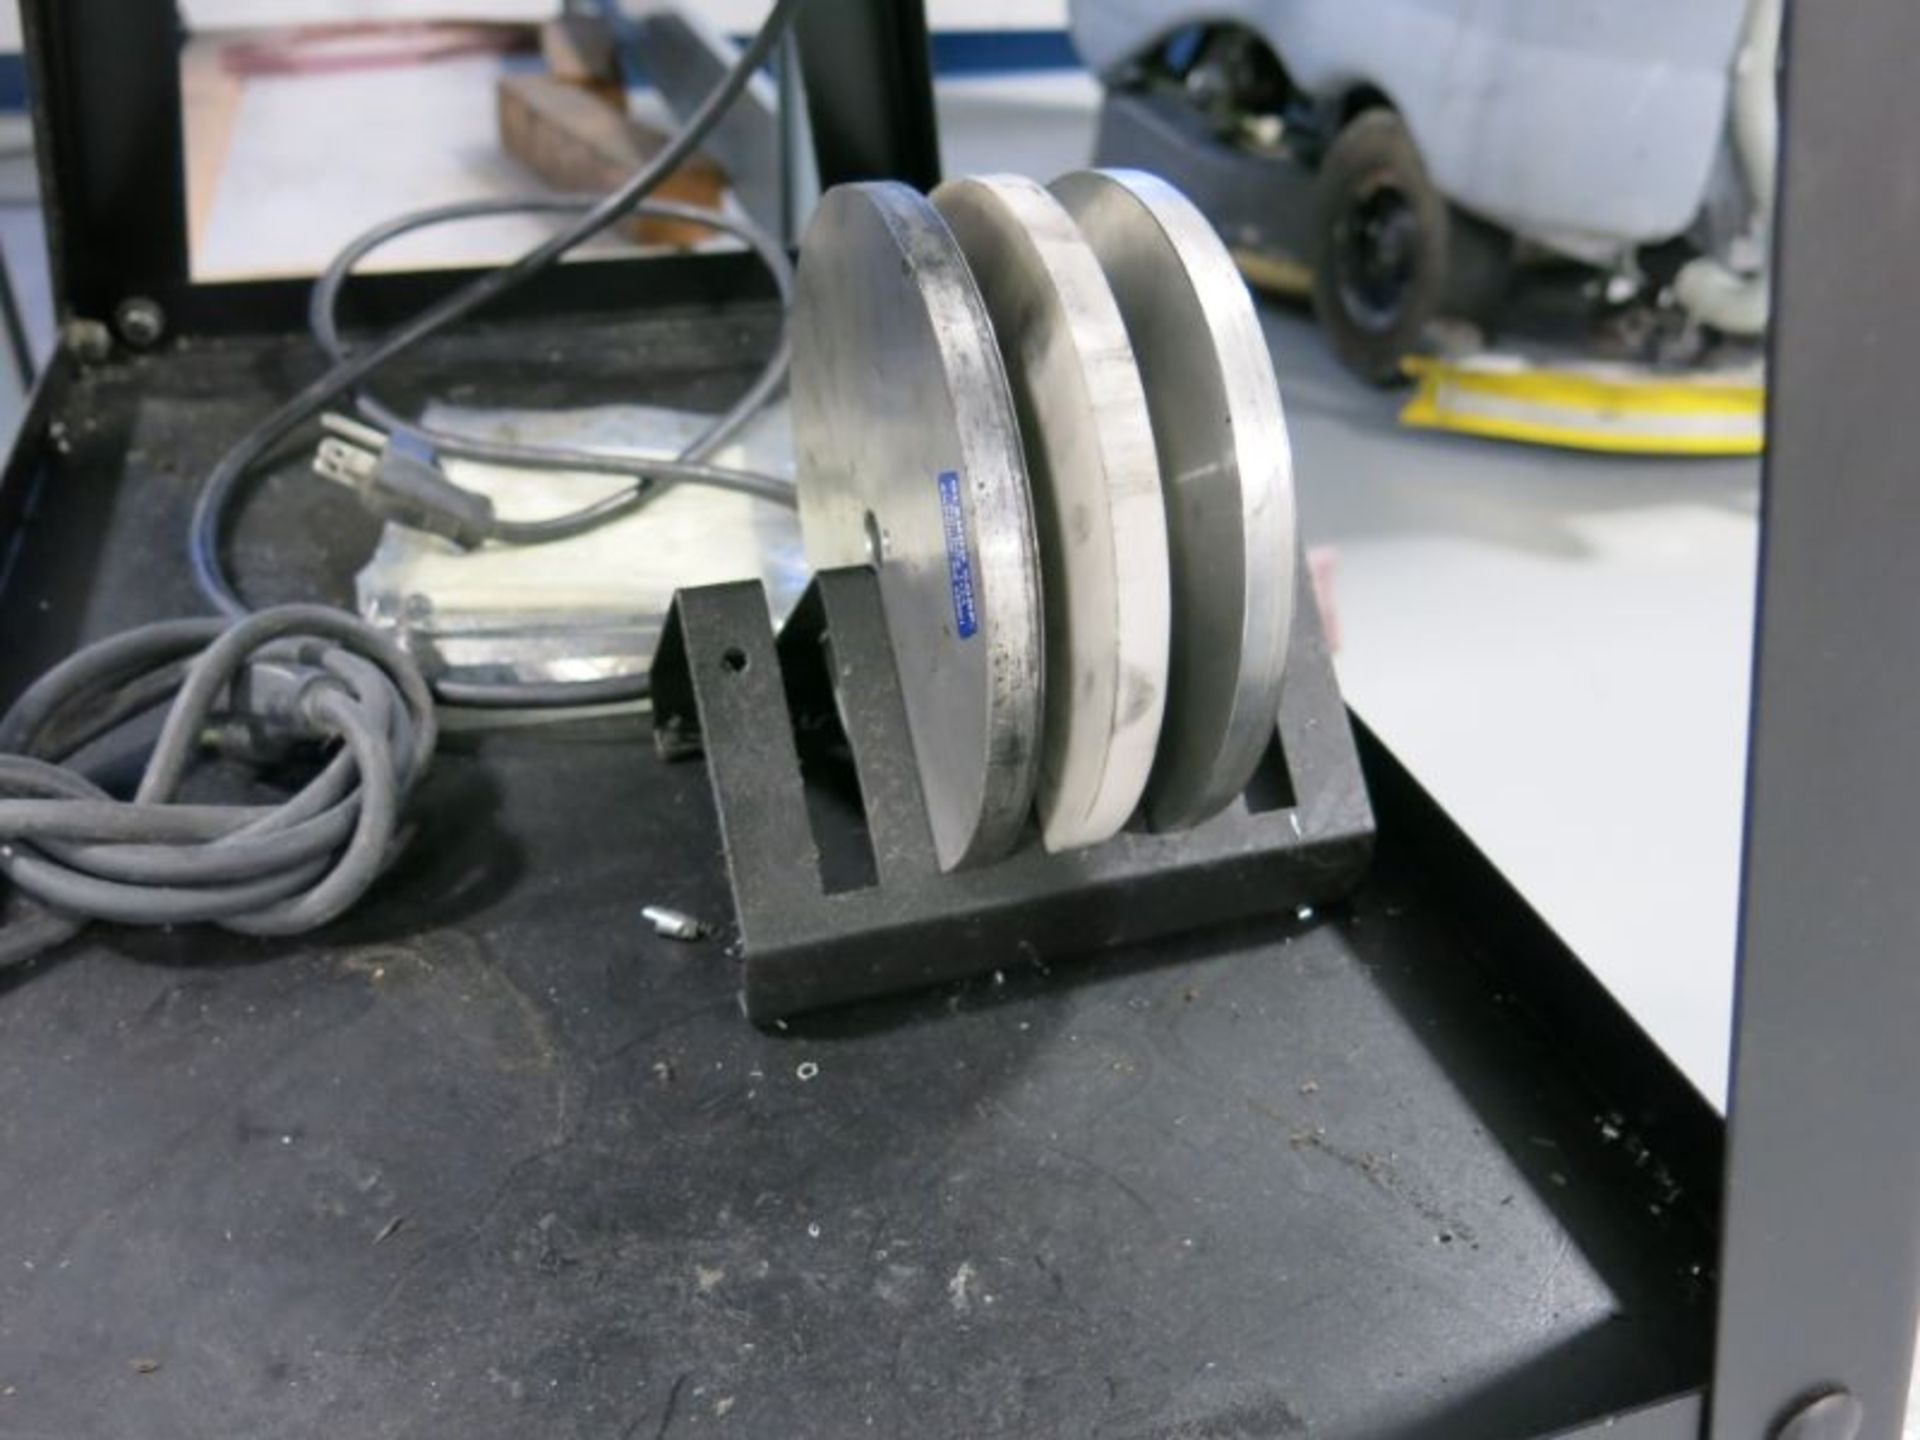 Accu-Finish Series-2 Carbide Grinder with Spare Carbide Discs and Stand - Image 2 of 2